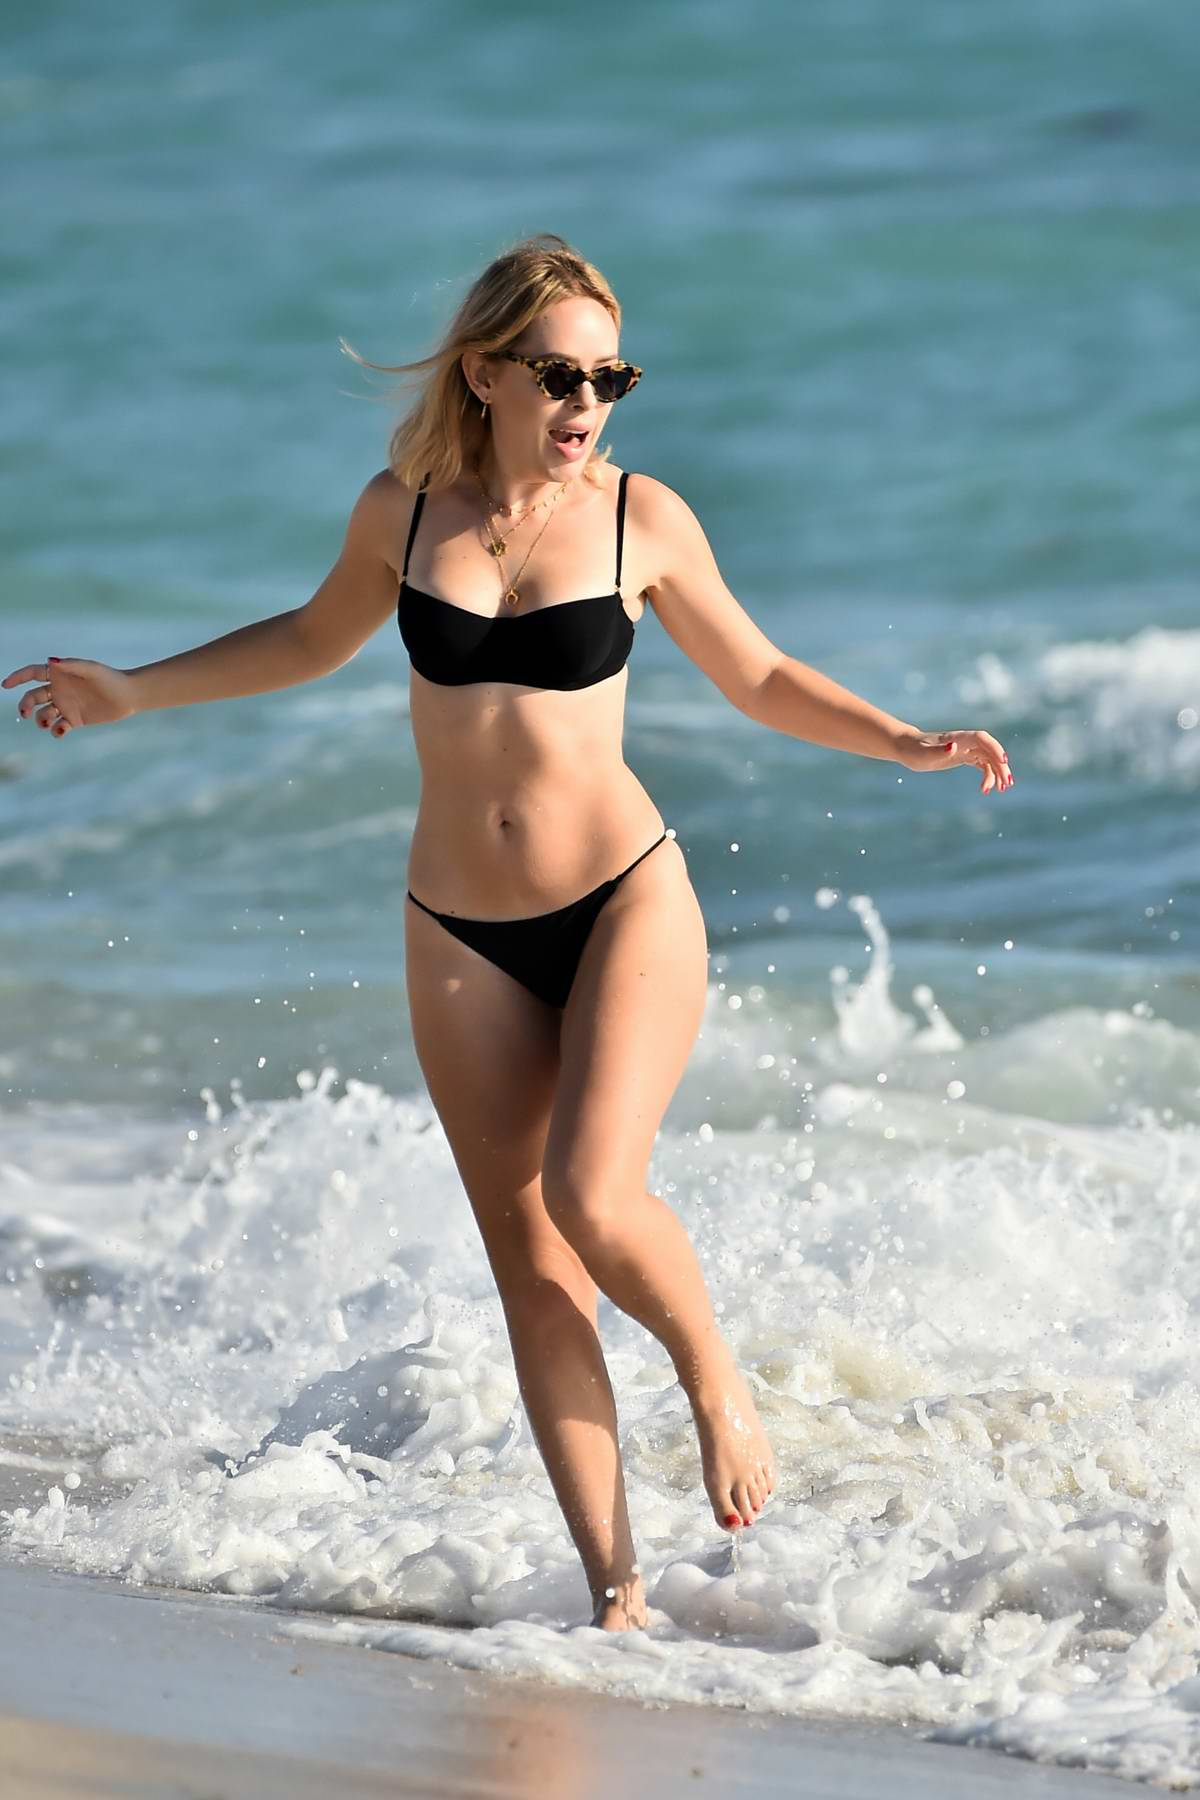 Tanya Burr hits the beach in a black bikini during her vacation in Miami, Florida